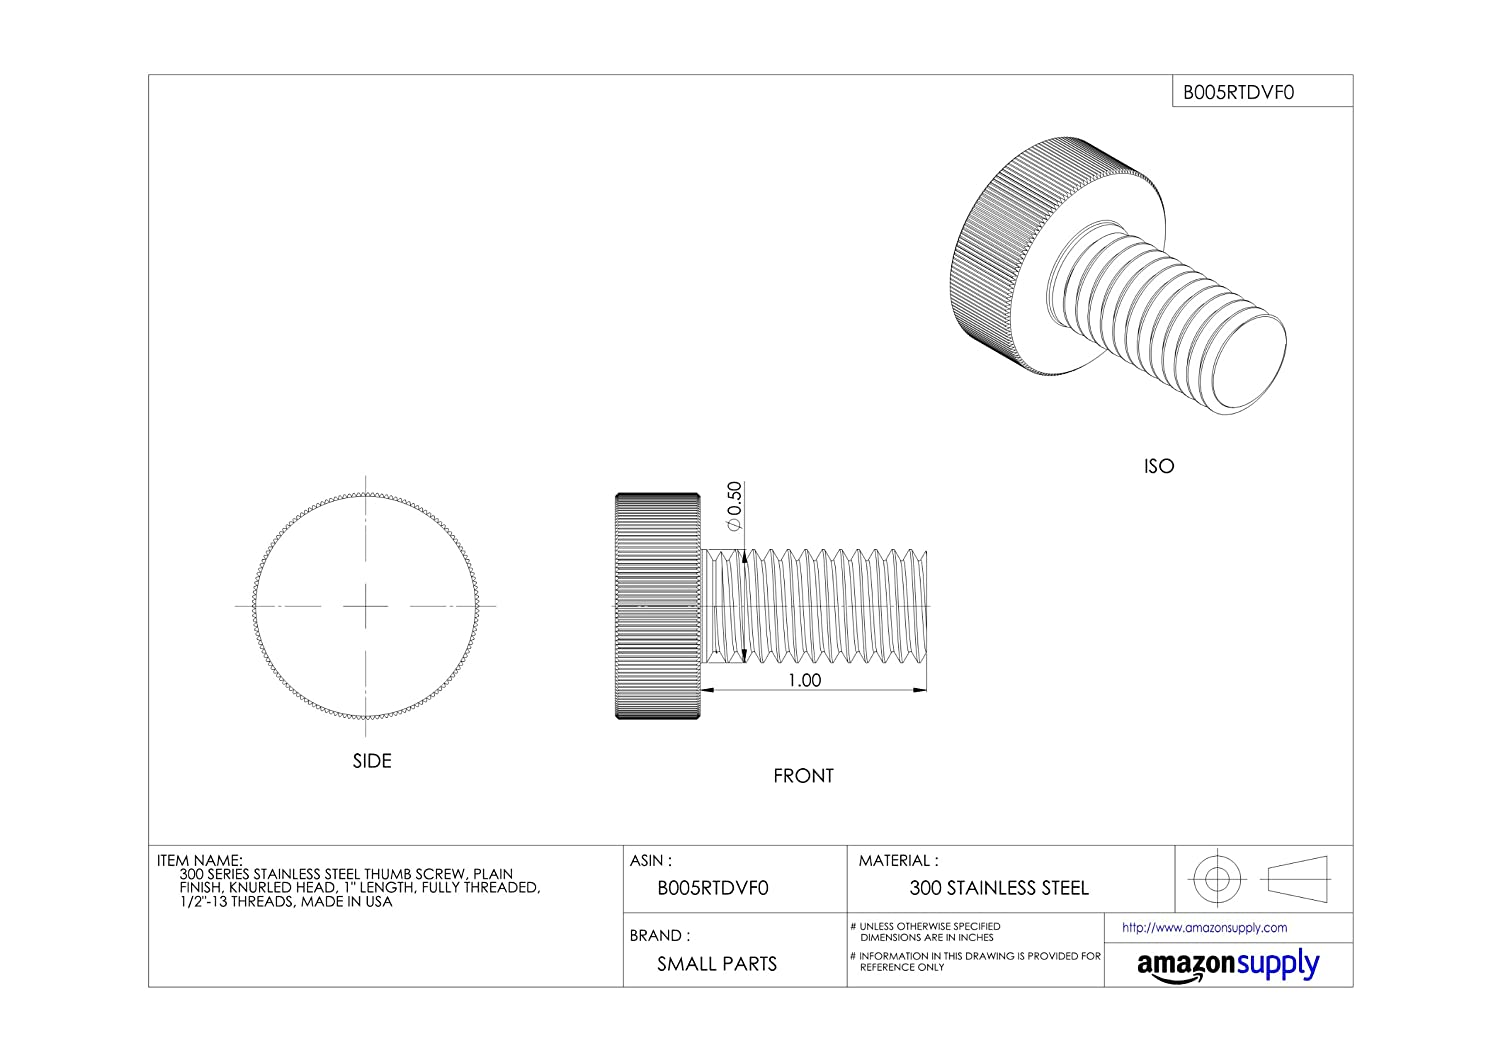 Made in US Plain Finish Fully Threaded 1 Length 1//2-13 UNC Threads Knurled Head 300 Series Stainless Steel Thumb Screw